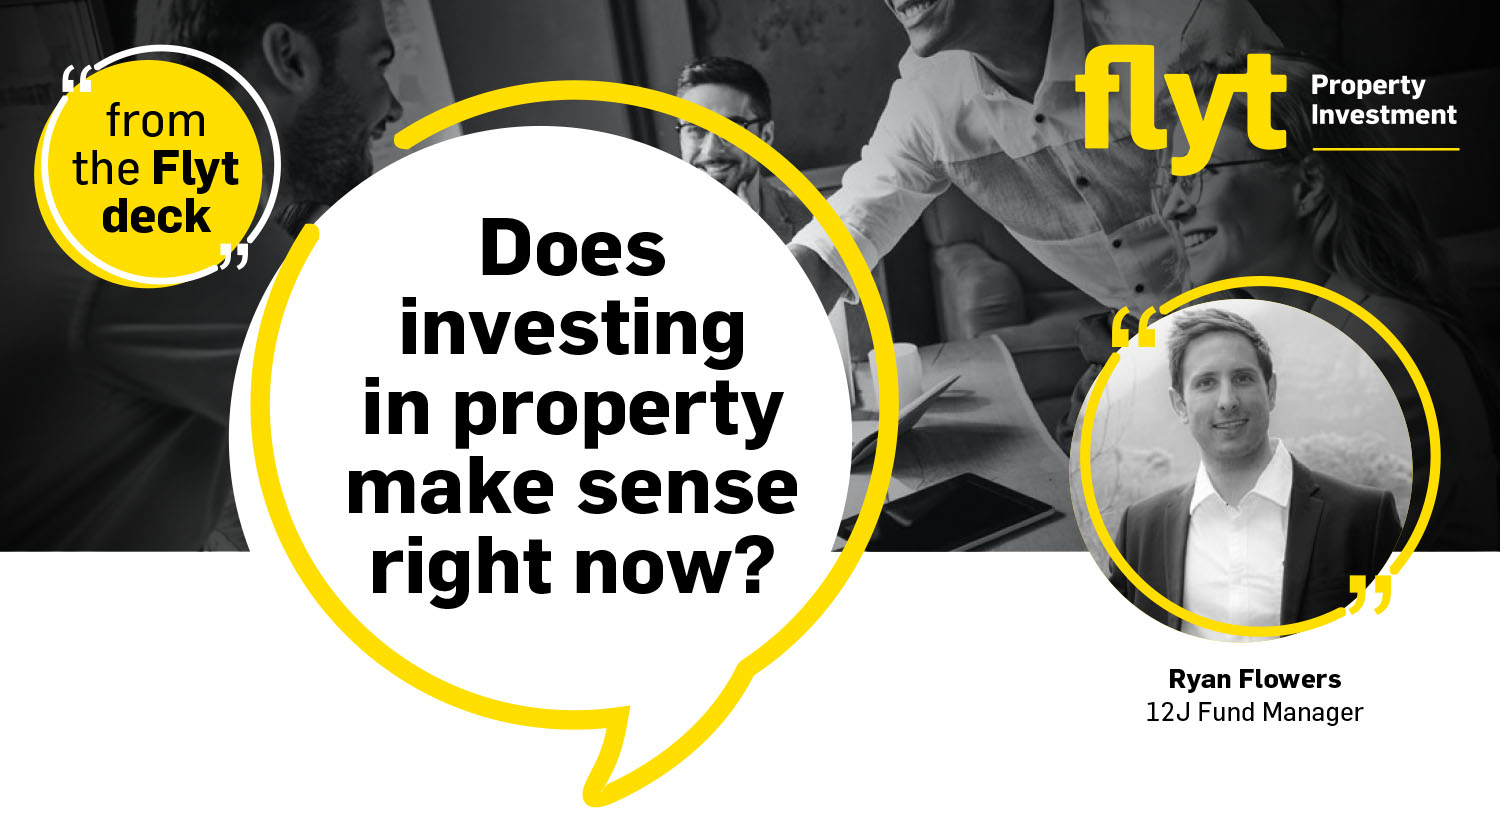 Does investing in property make sense right now?